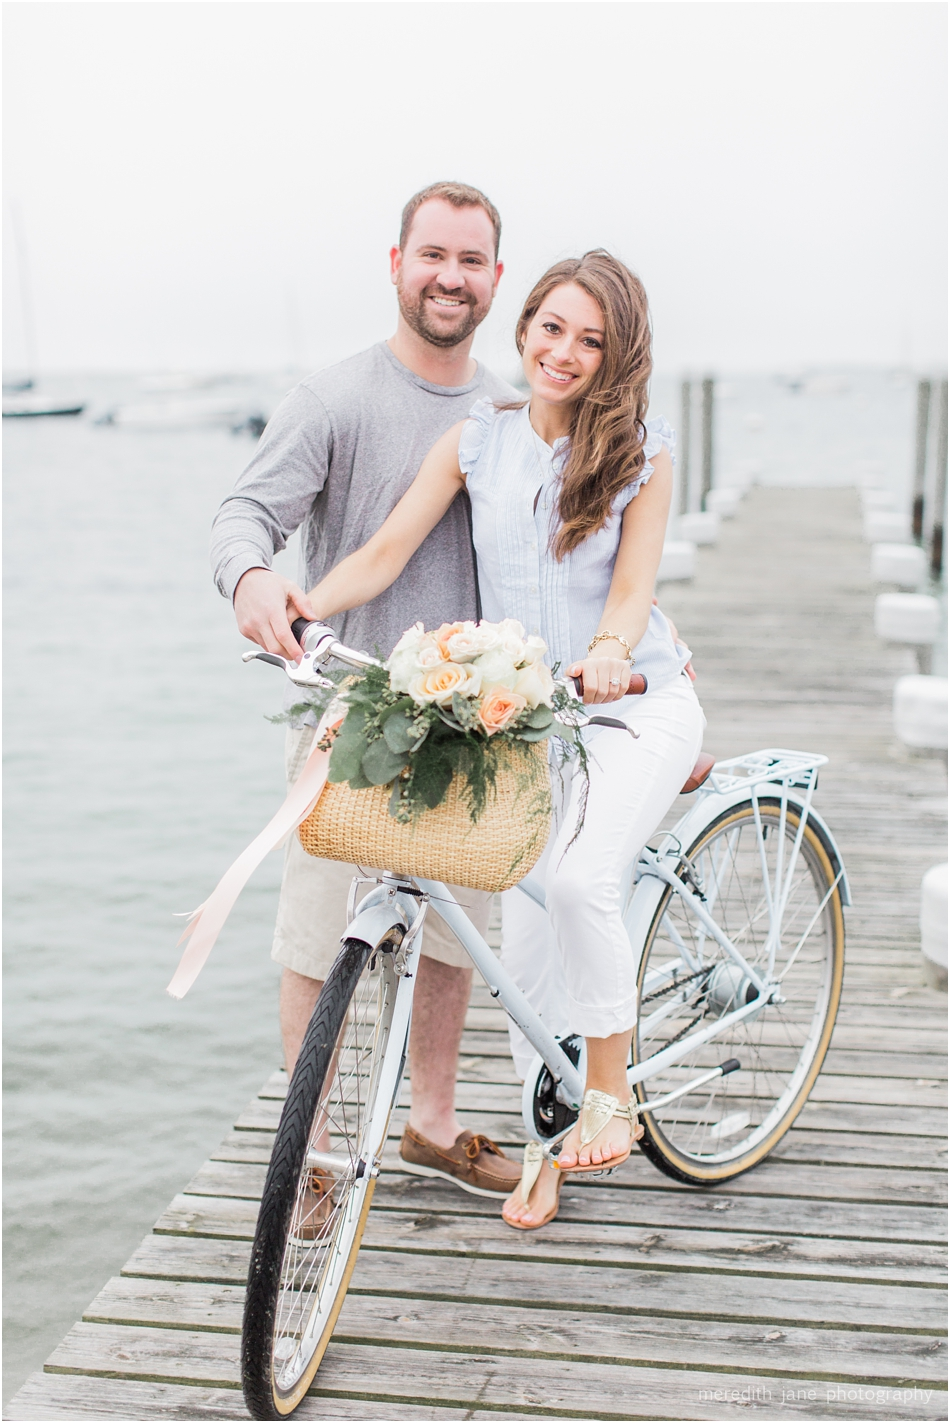 nantucket_engagement_session_downtown_bike_basket_breezer_downtown_8_boston_massachusetts_cape_cod_new_england_wedding_photographer_Meredith_Jane_Photography_photo_1431.jpg